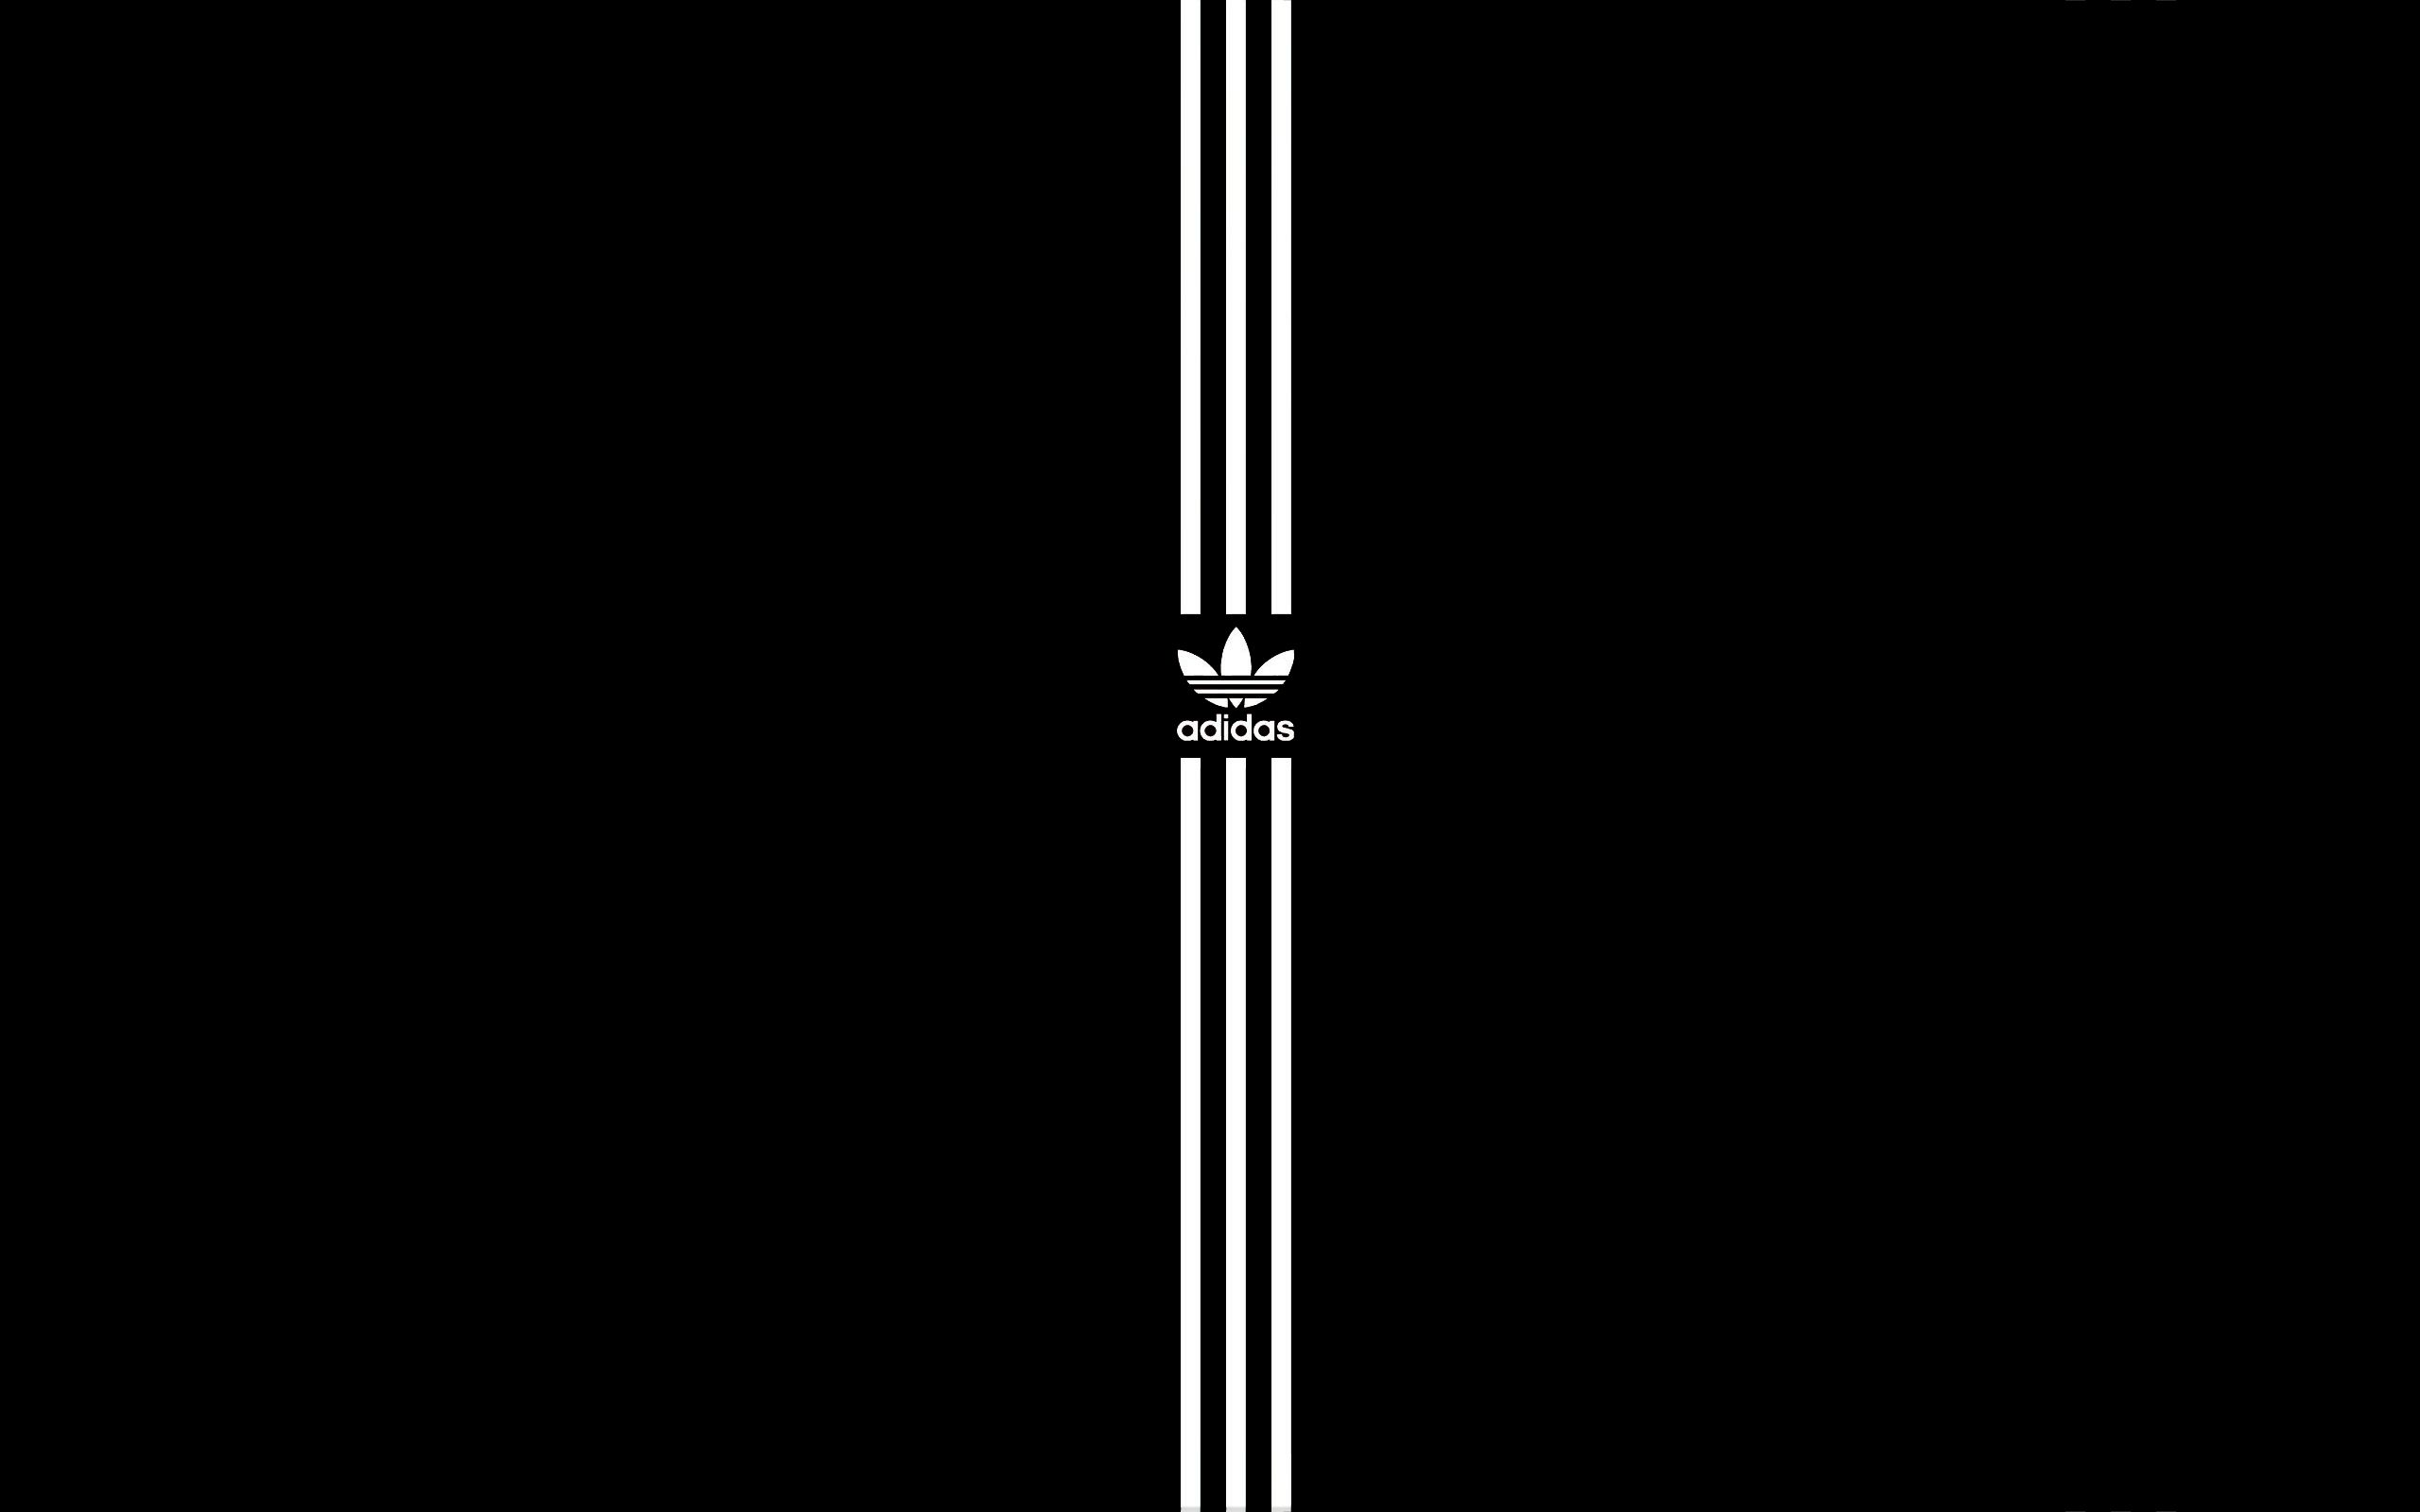 Adidas 4K Wallpapers - Top Free Adidas 4K Backgrounds ...